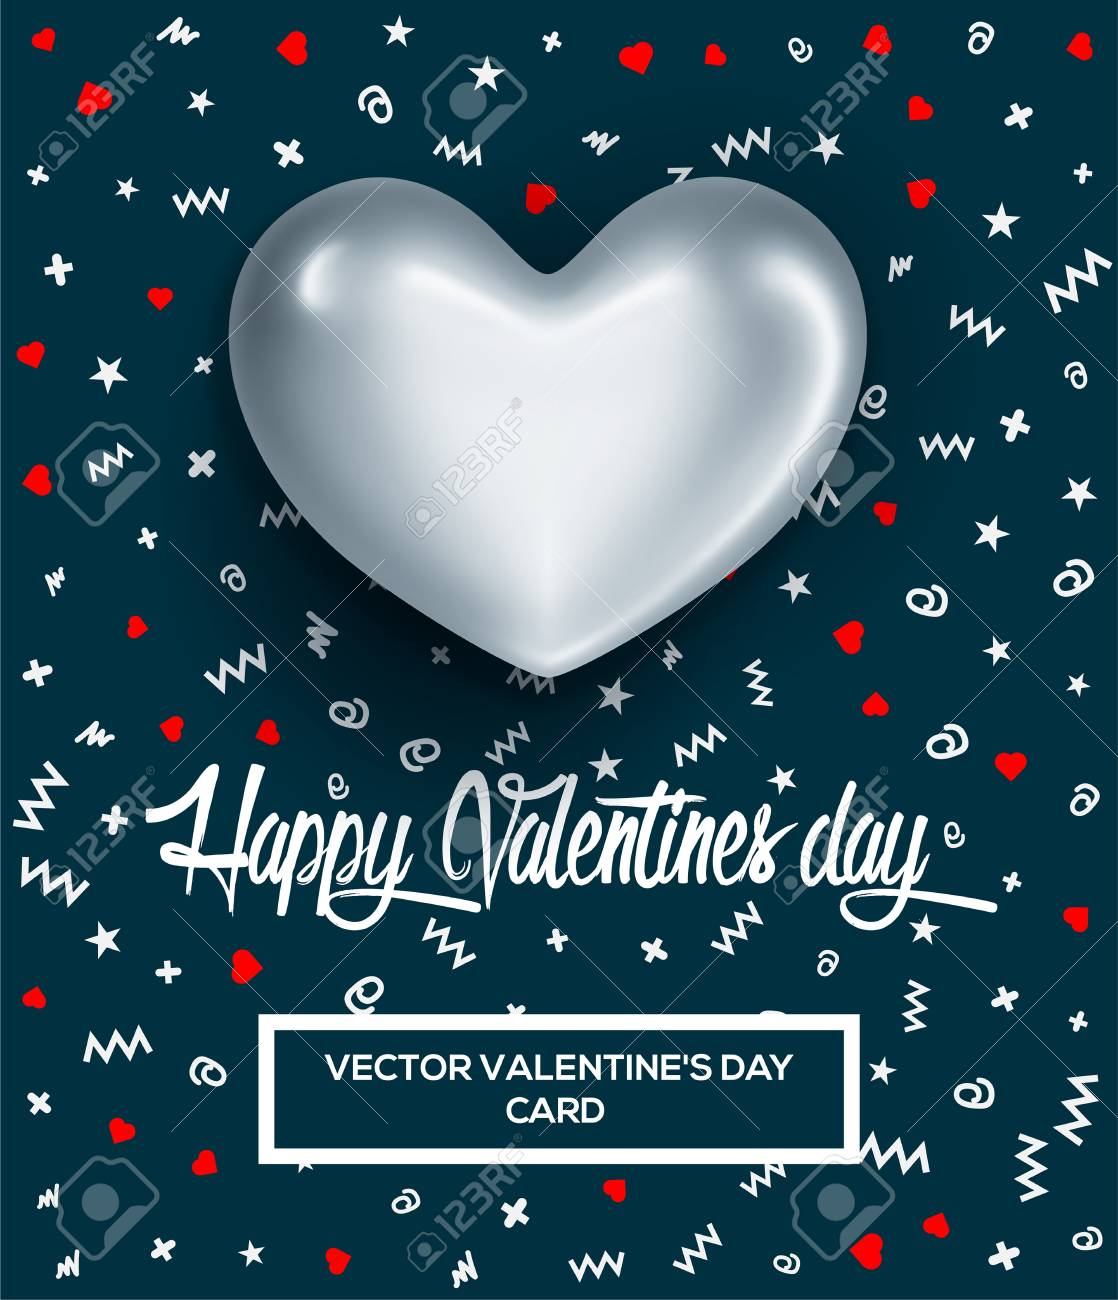 Happy Valentines Day Greeting Card Or Poster With Glossy Silver